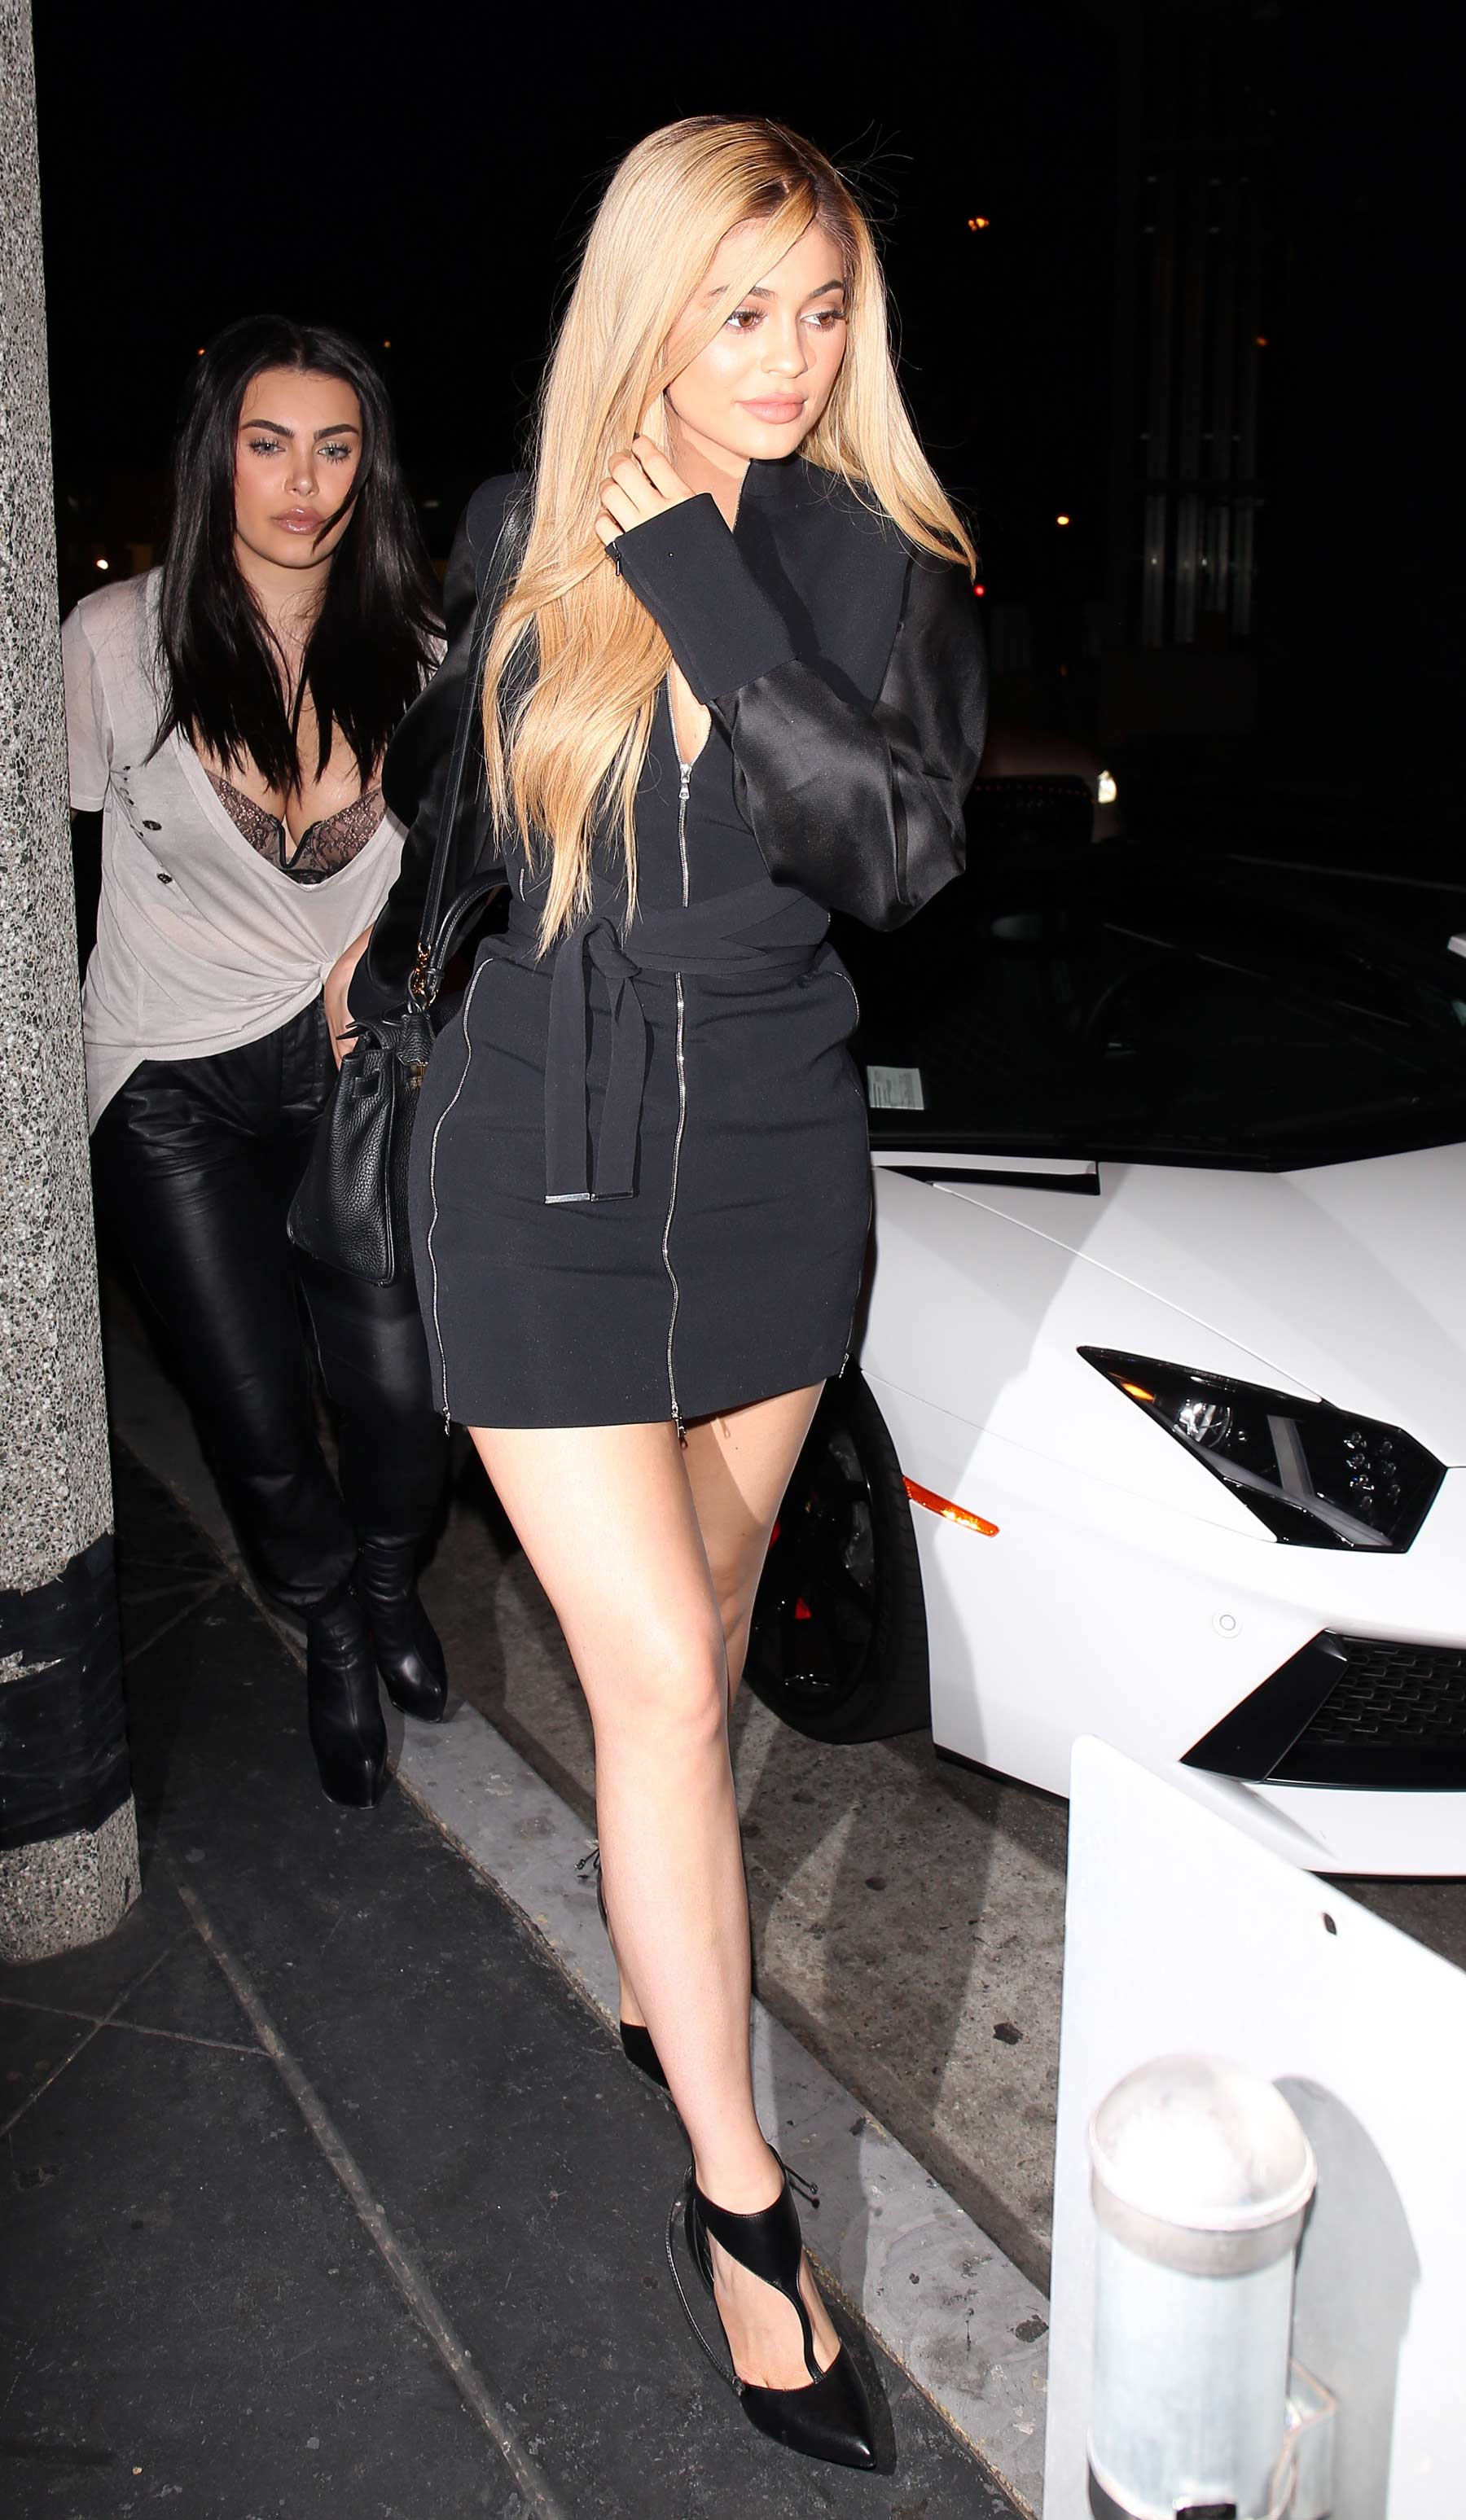 Kylie Jenner out in West Hollywood